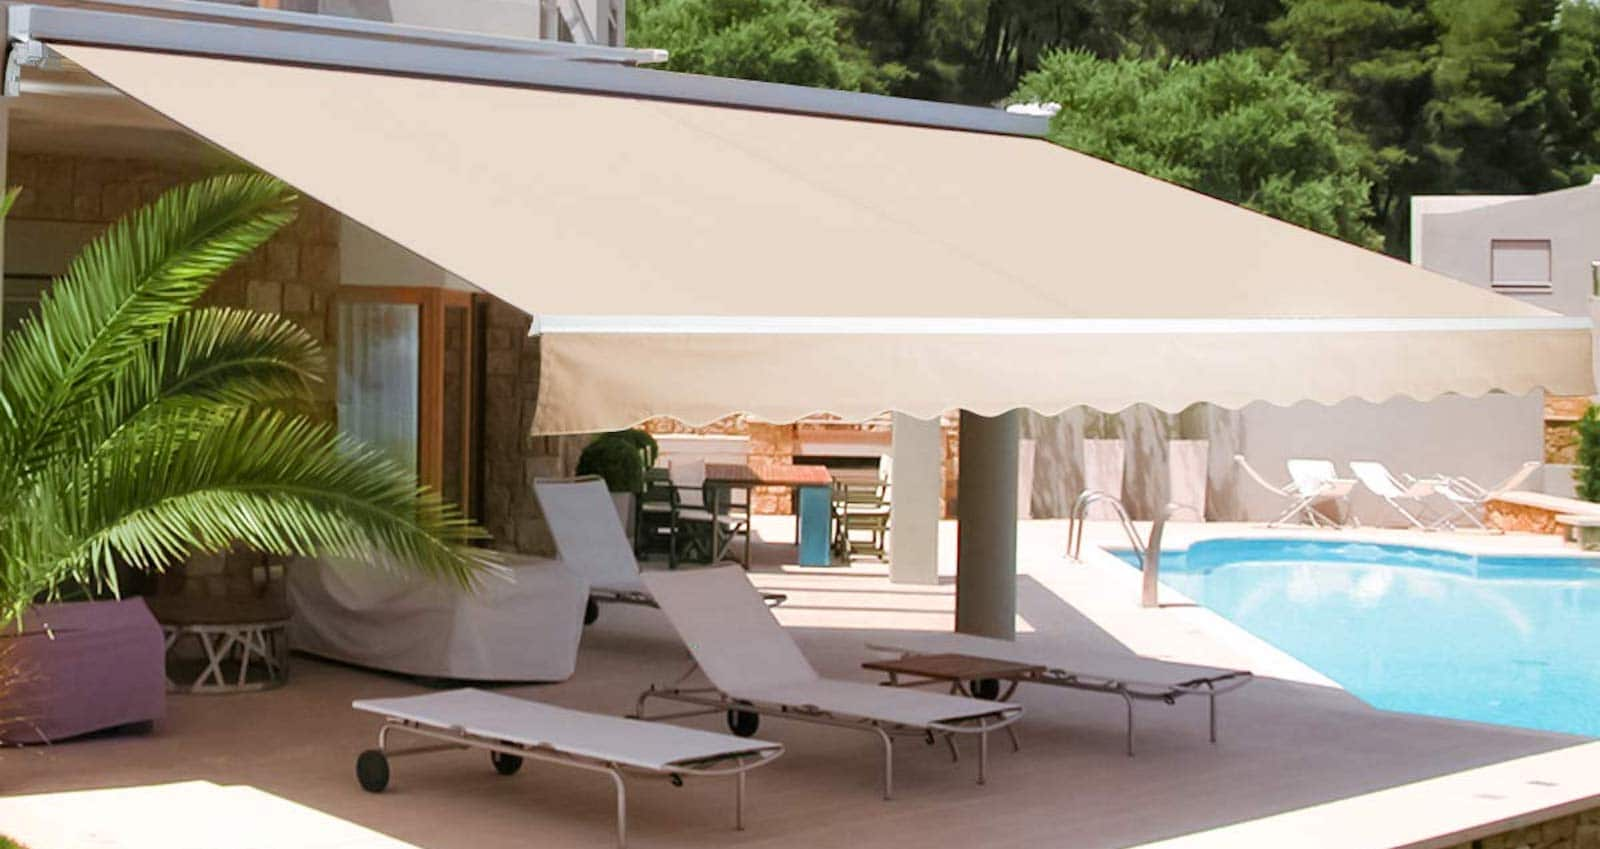 retractable awning buyer guide